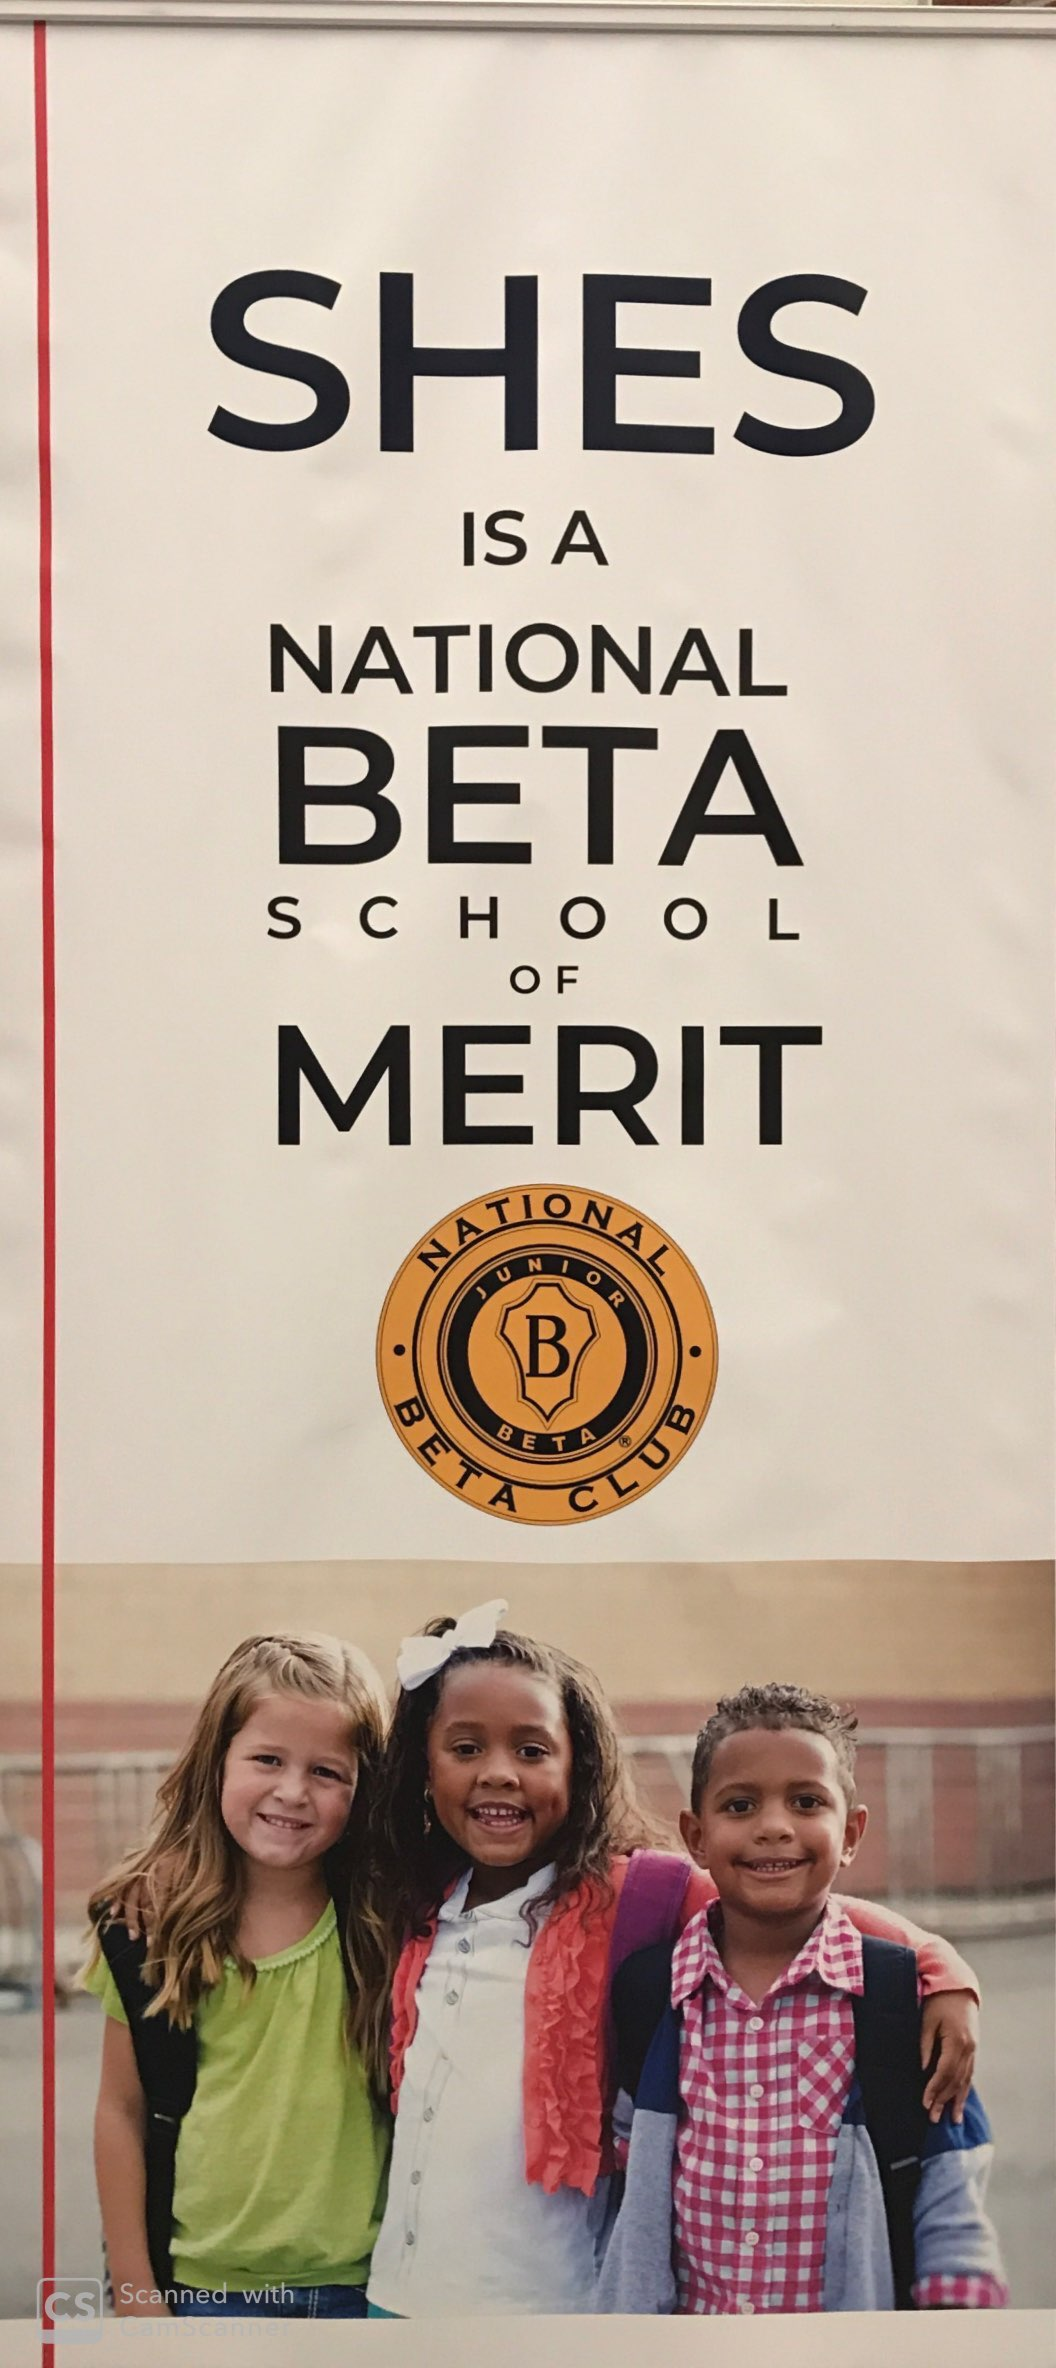 National BETA School of Merit